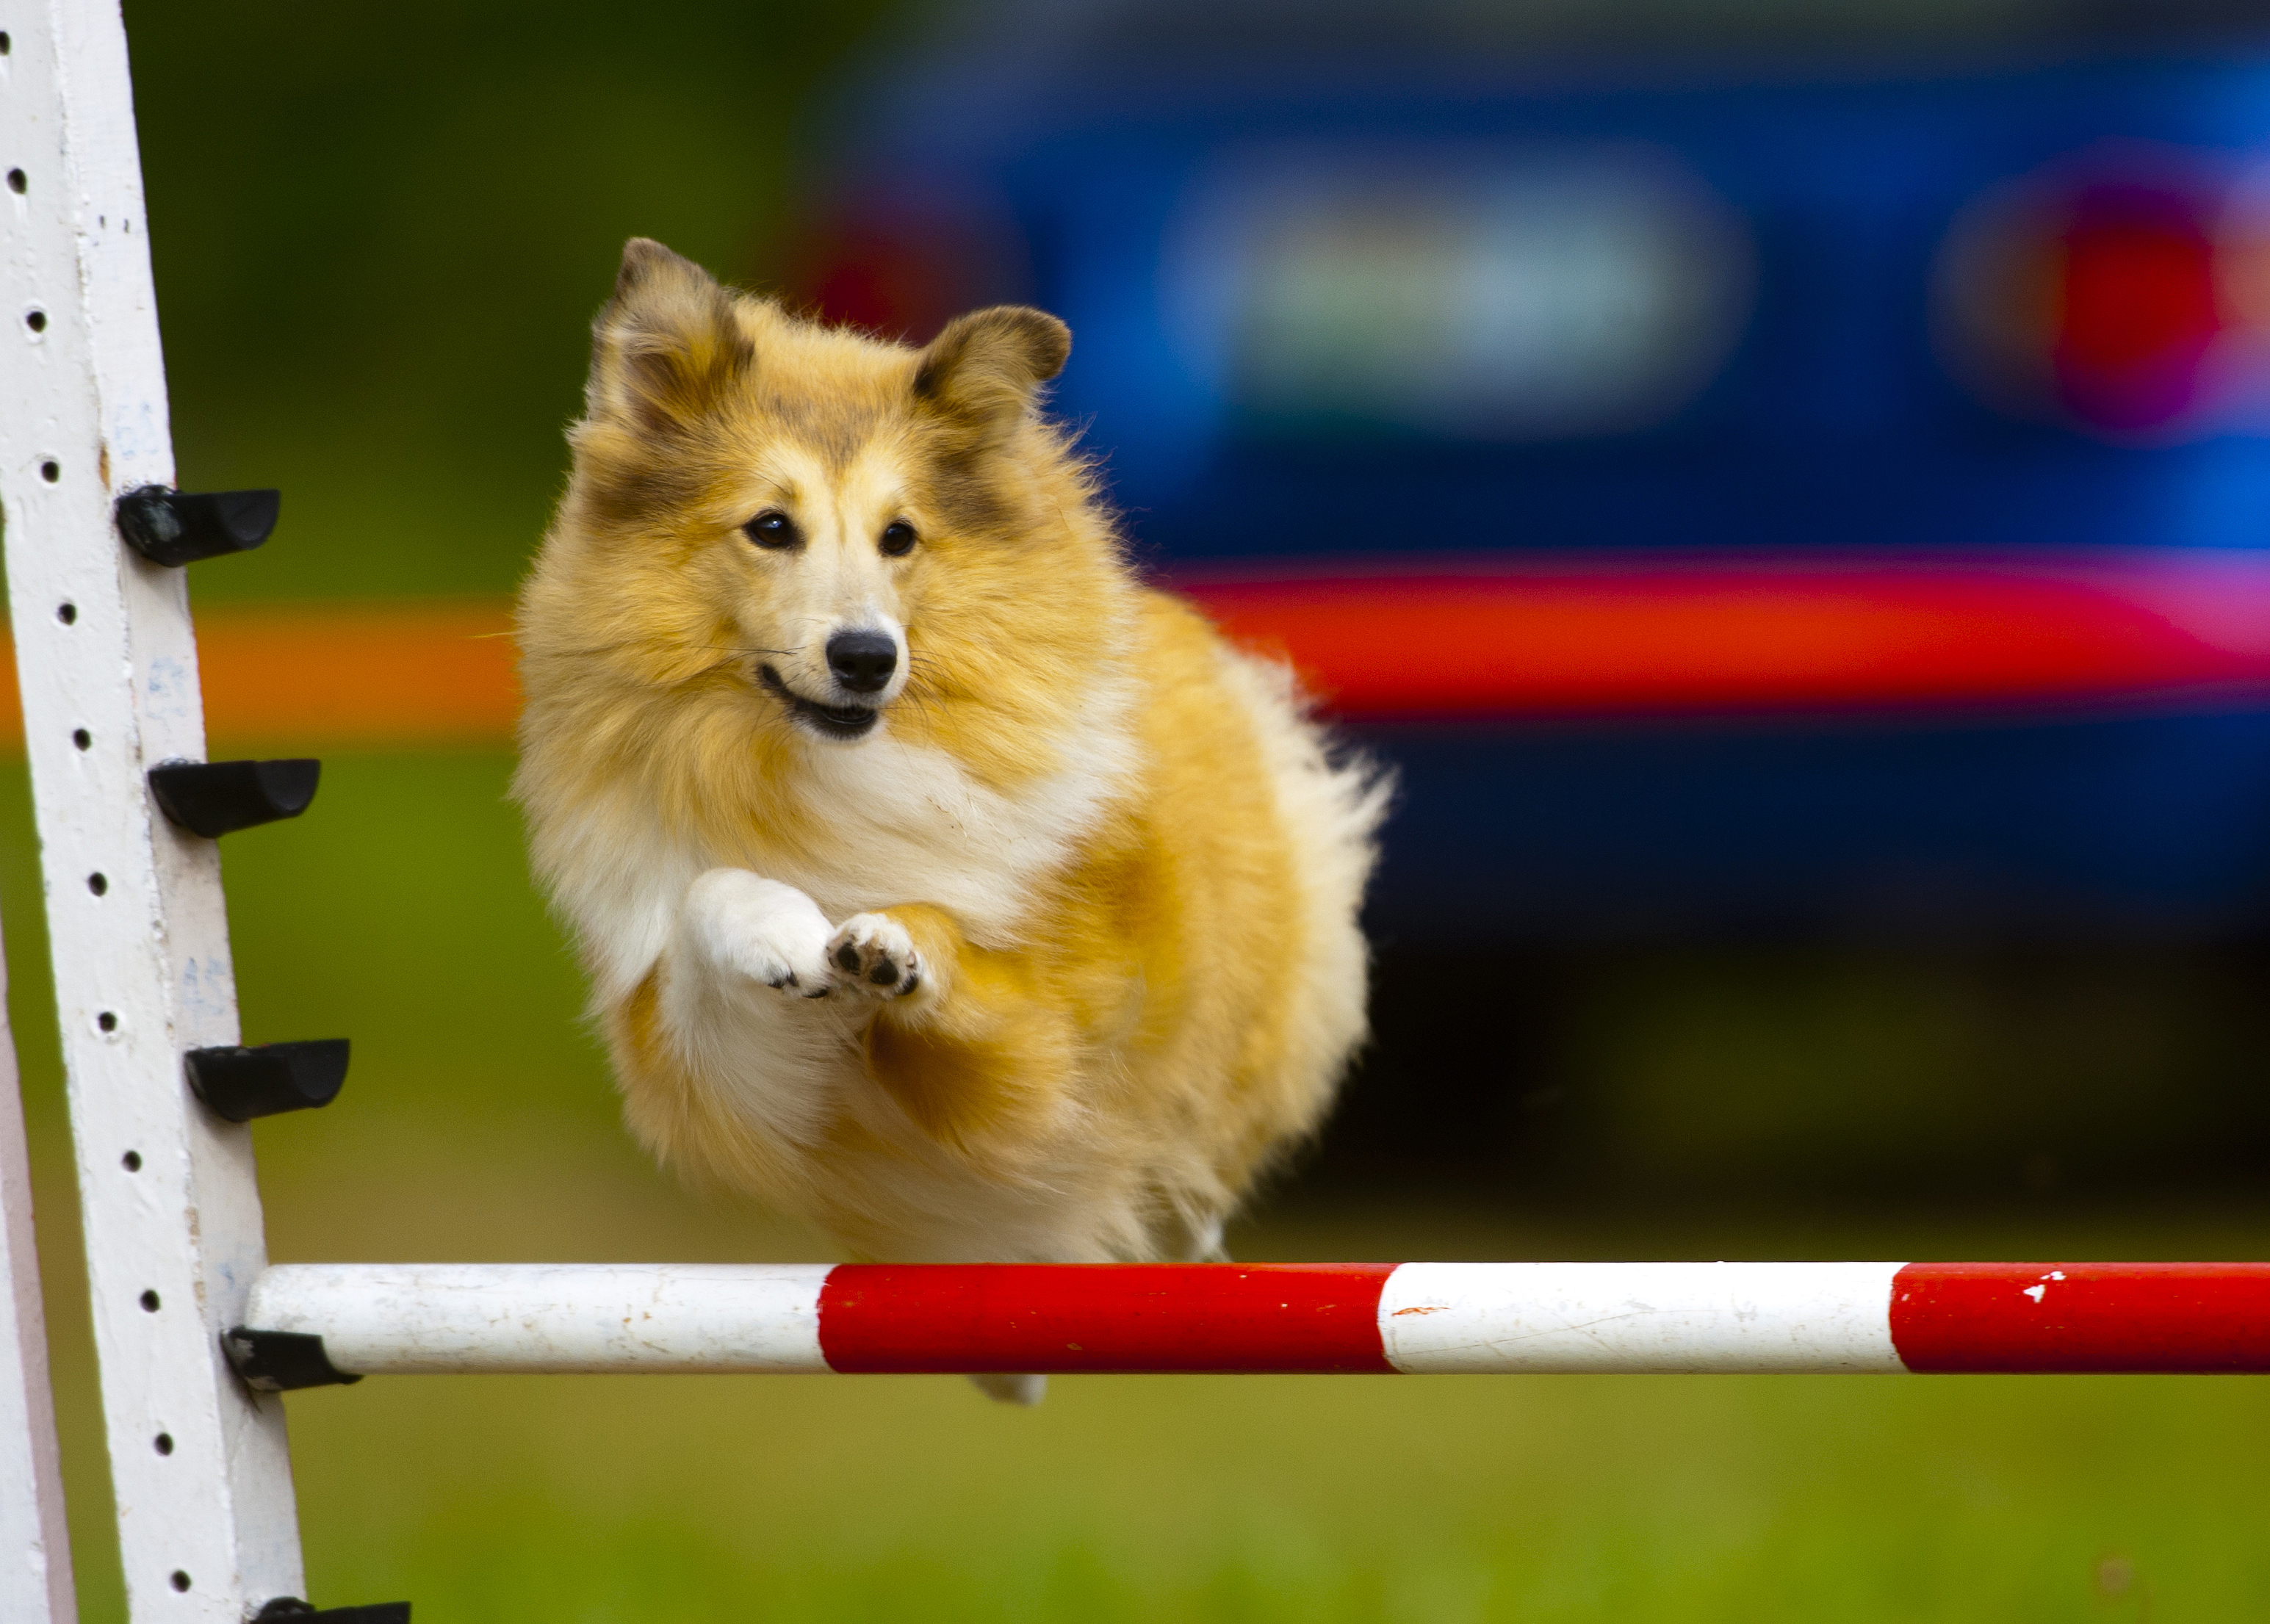 Animaltalk Top Dog Awards - get to know the agility winners! Q